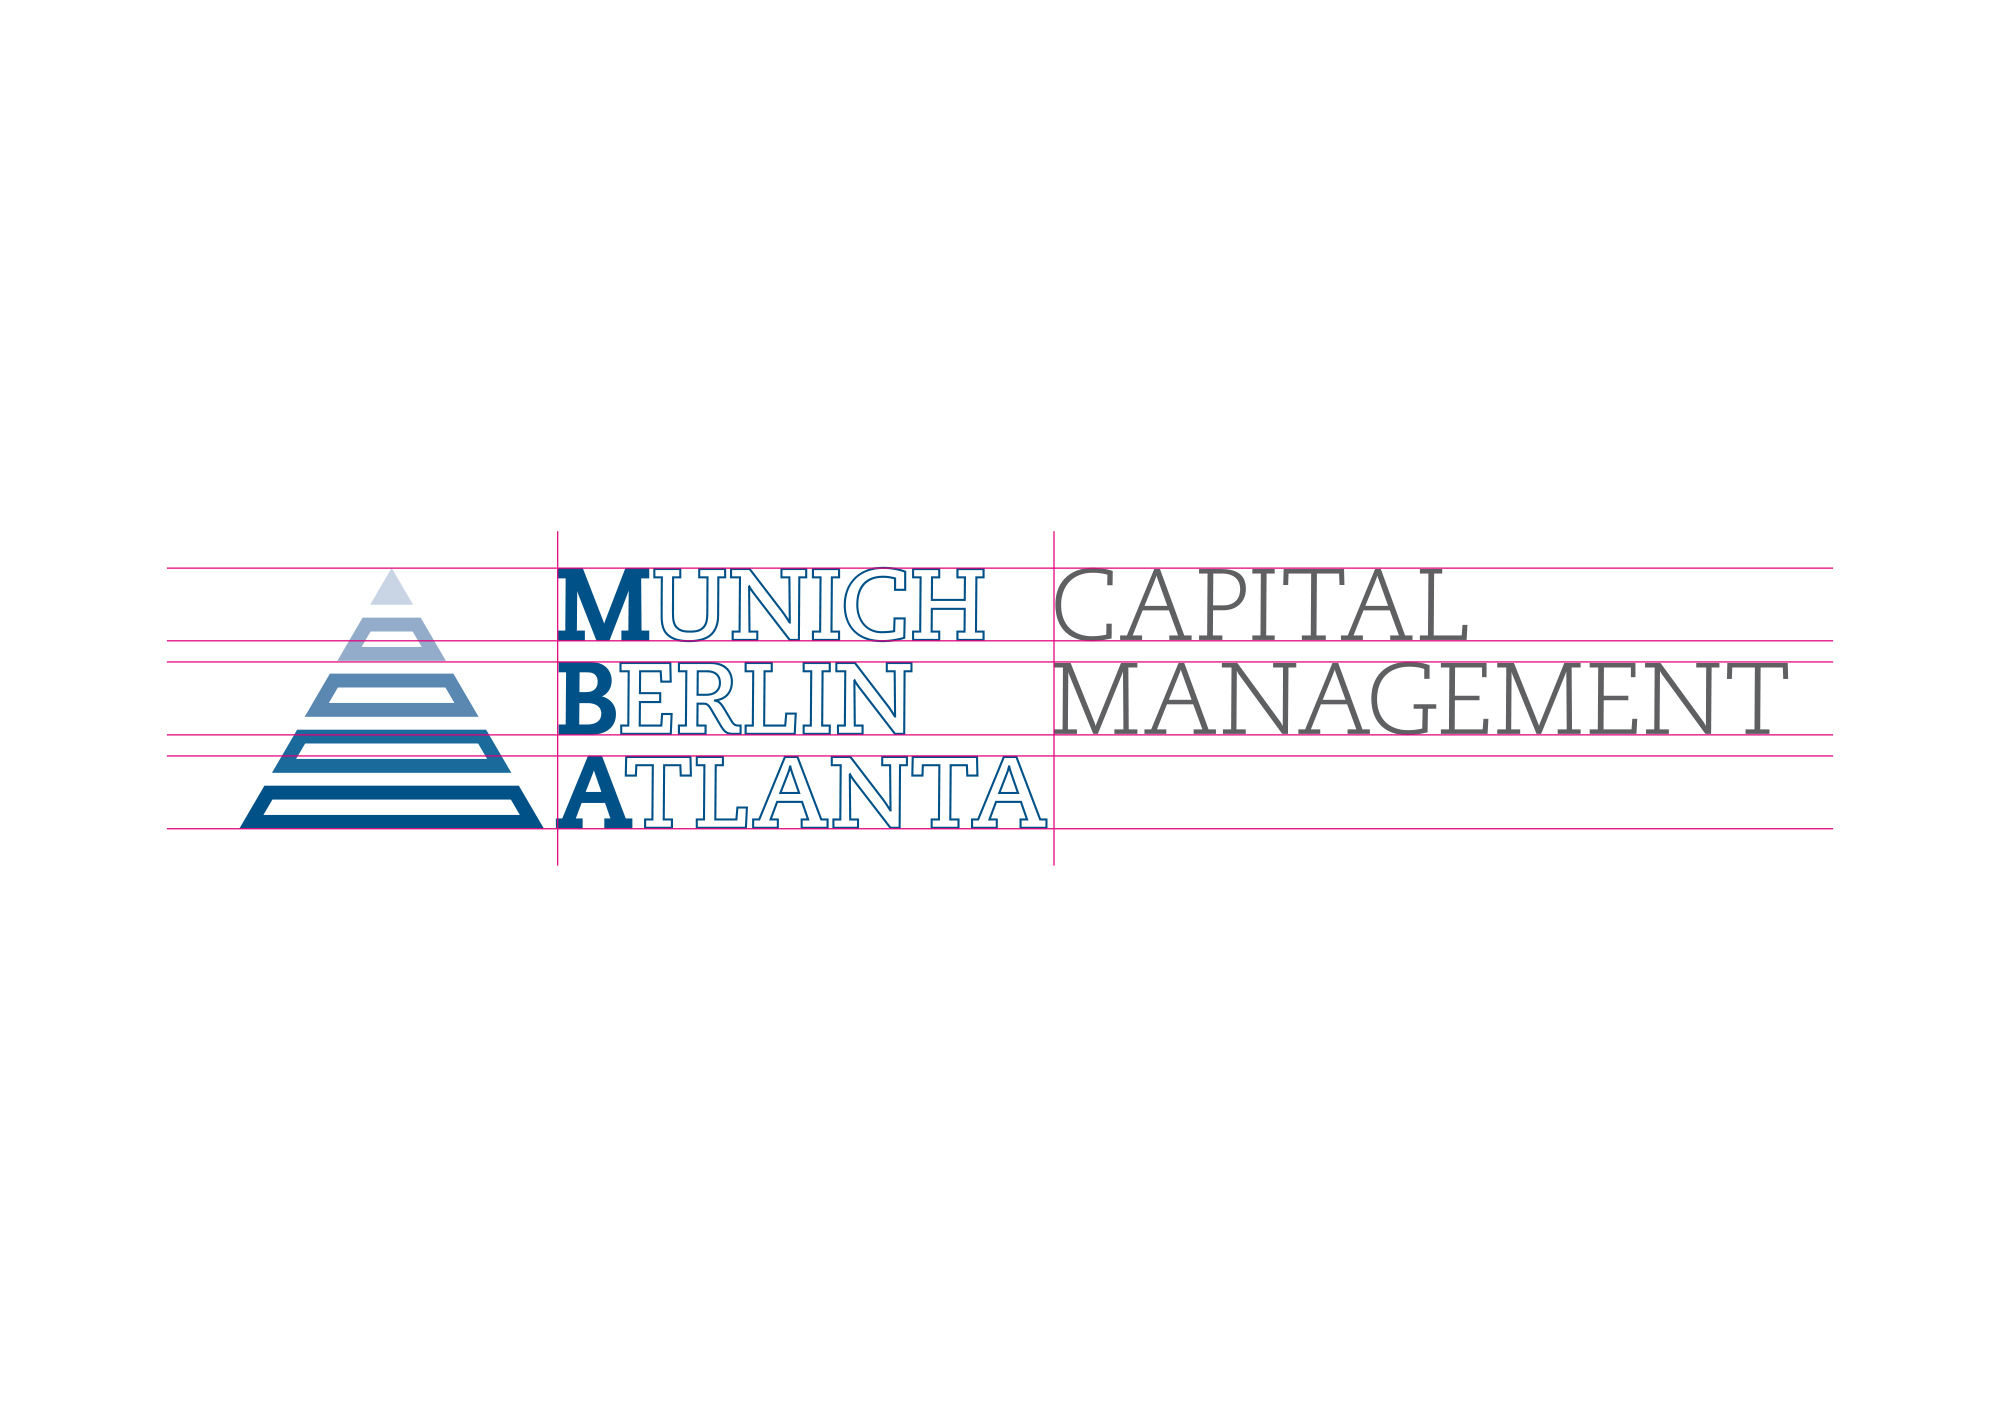 MBA-Management-Logo_Claim_Details.jpg?fit=2000%2C1414